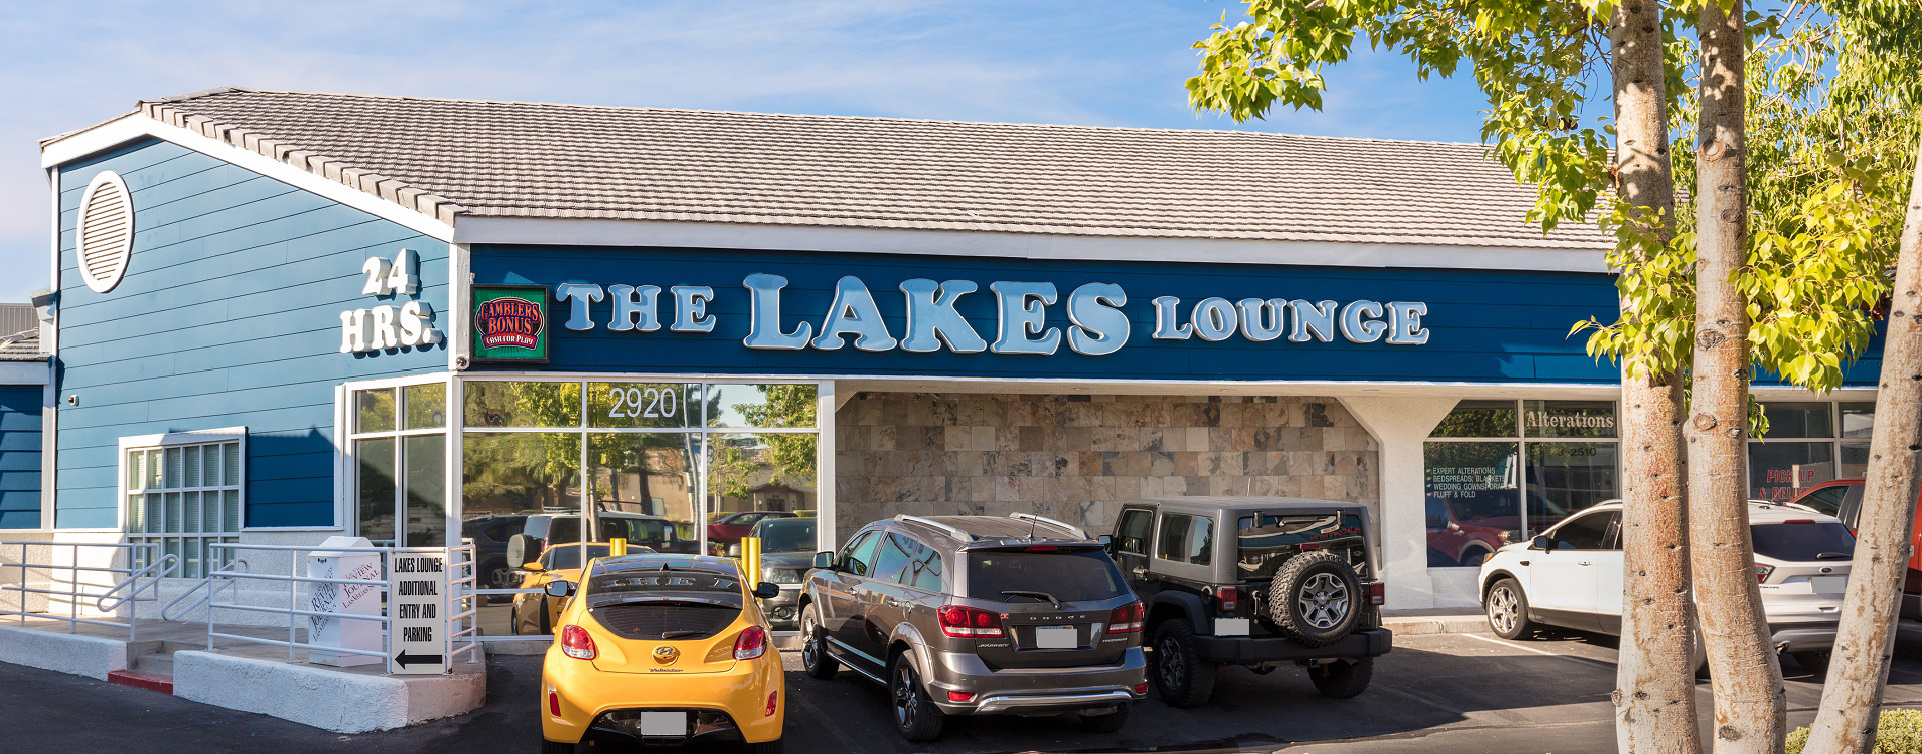 the lakes lounge outside 2017